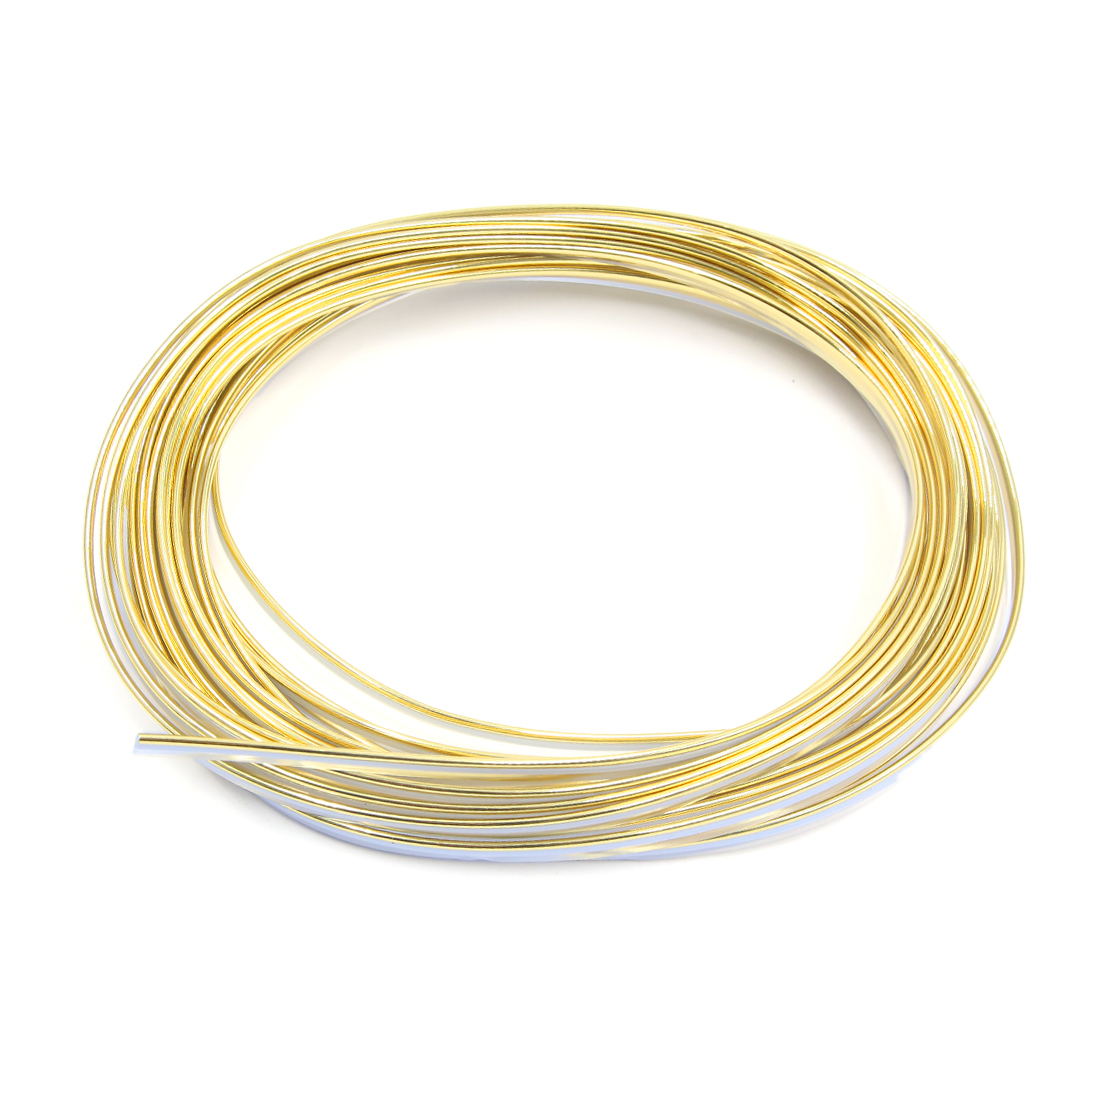 Gold Tone Car Interior Exterior Decoration Moulding Trim Strip Line 10M Lenght